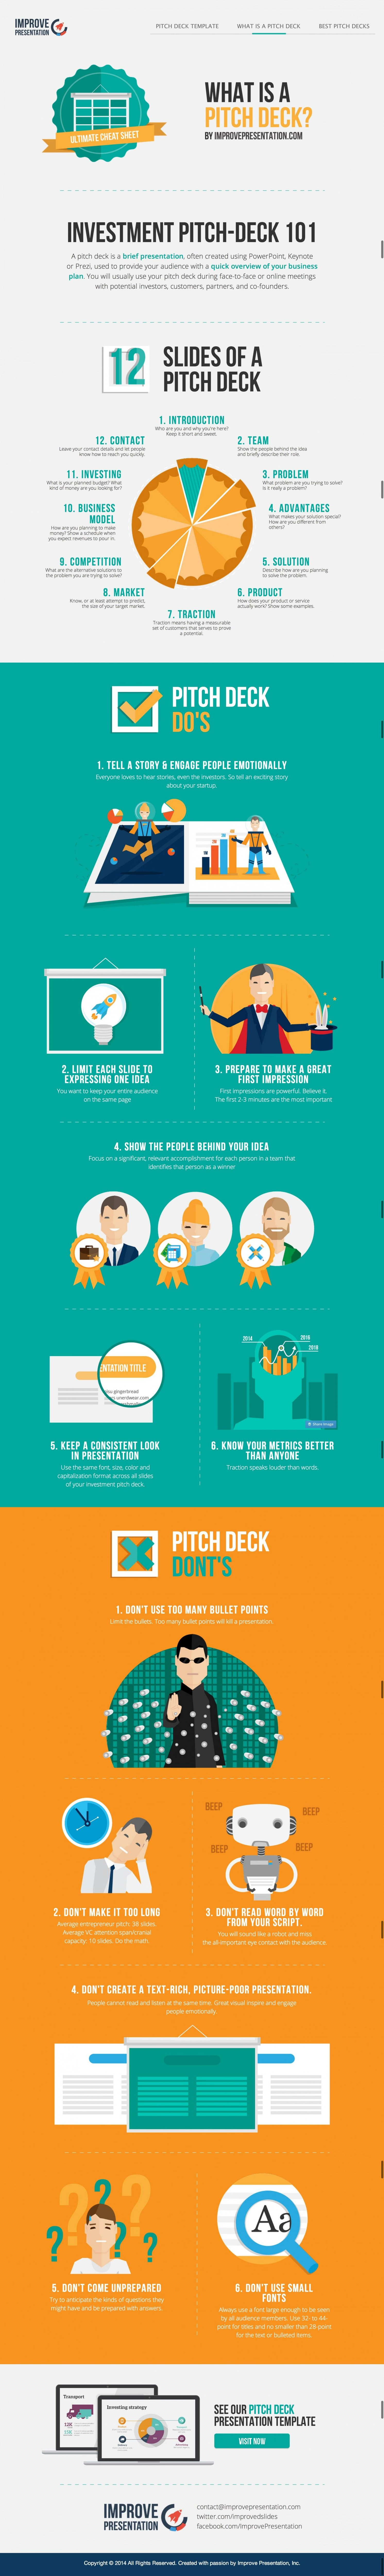 What Is A Pitch Deck Infographic  Elevator Pitch